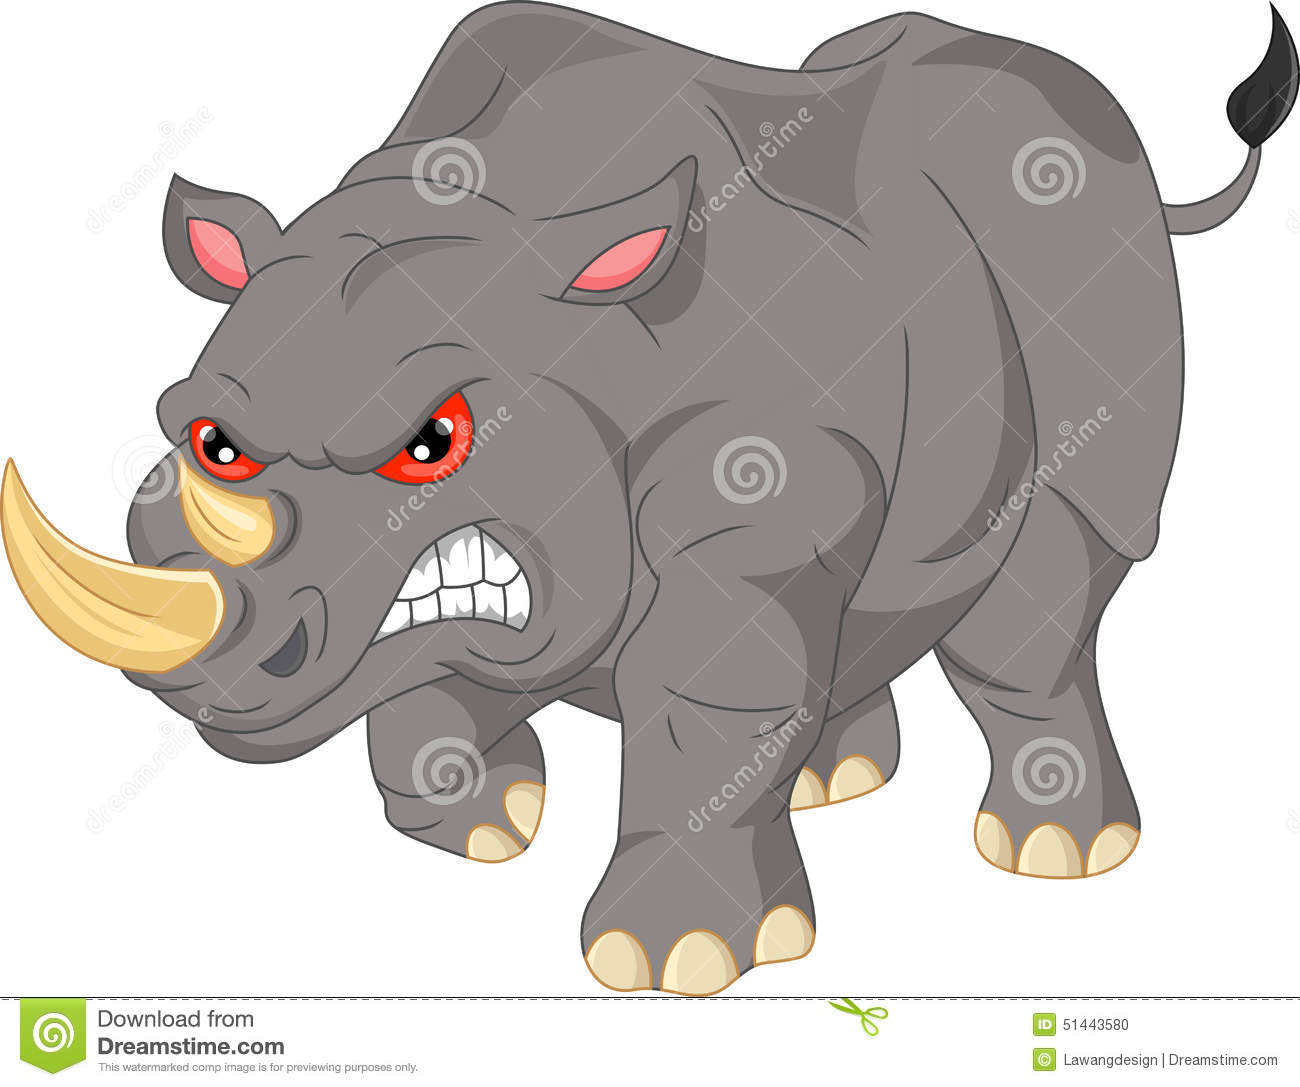 Download Cute Angry Rhino Cartoon Stock Vector Illustration Of Standing